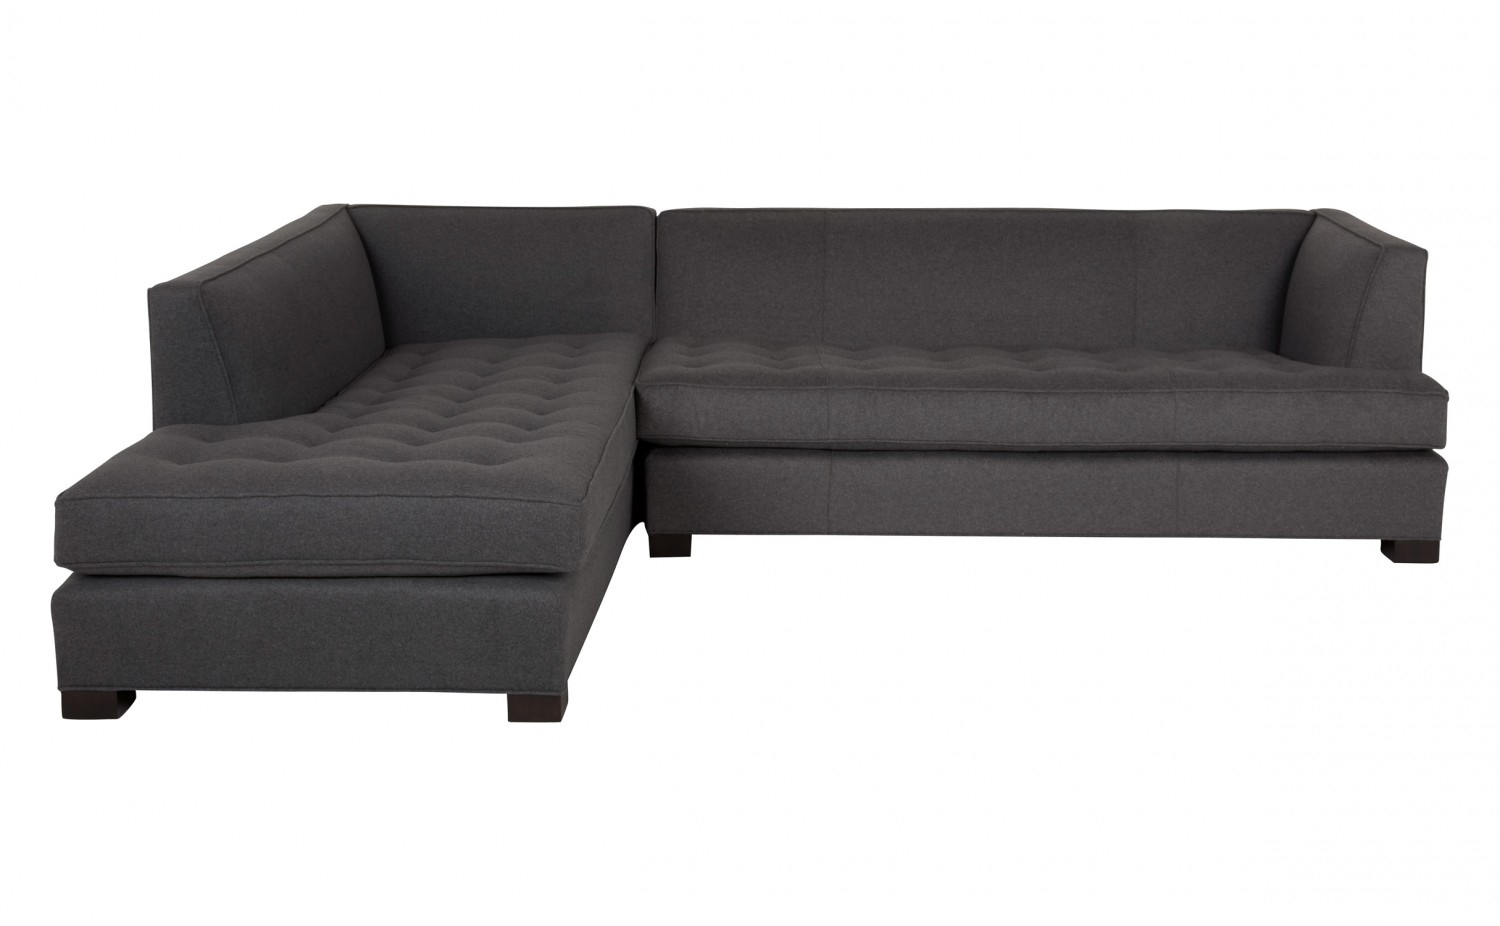 Jordan Sectional [Custom] | Jayson Home With Regard To Jordans Sectional Sofas (View 1 of 10)